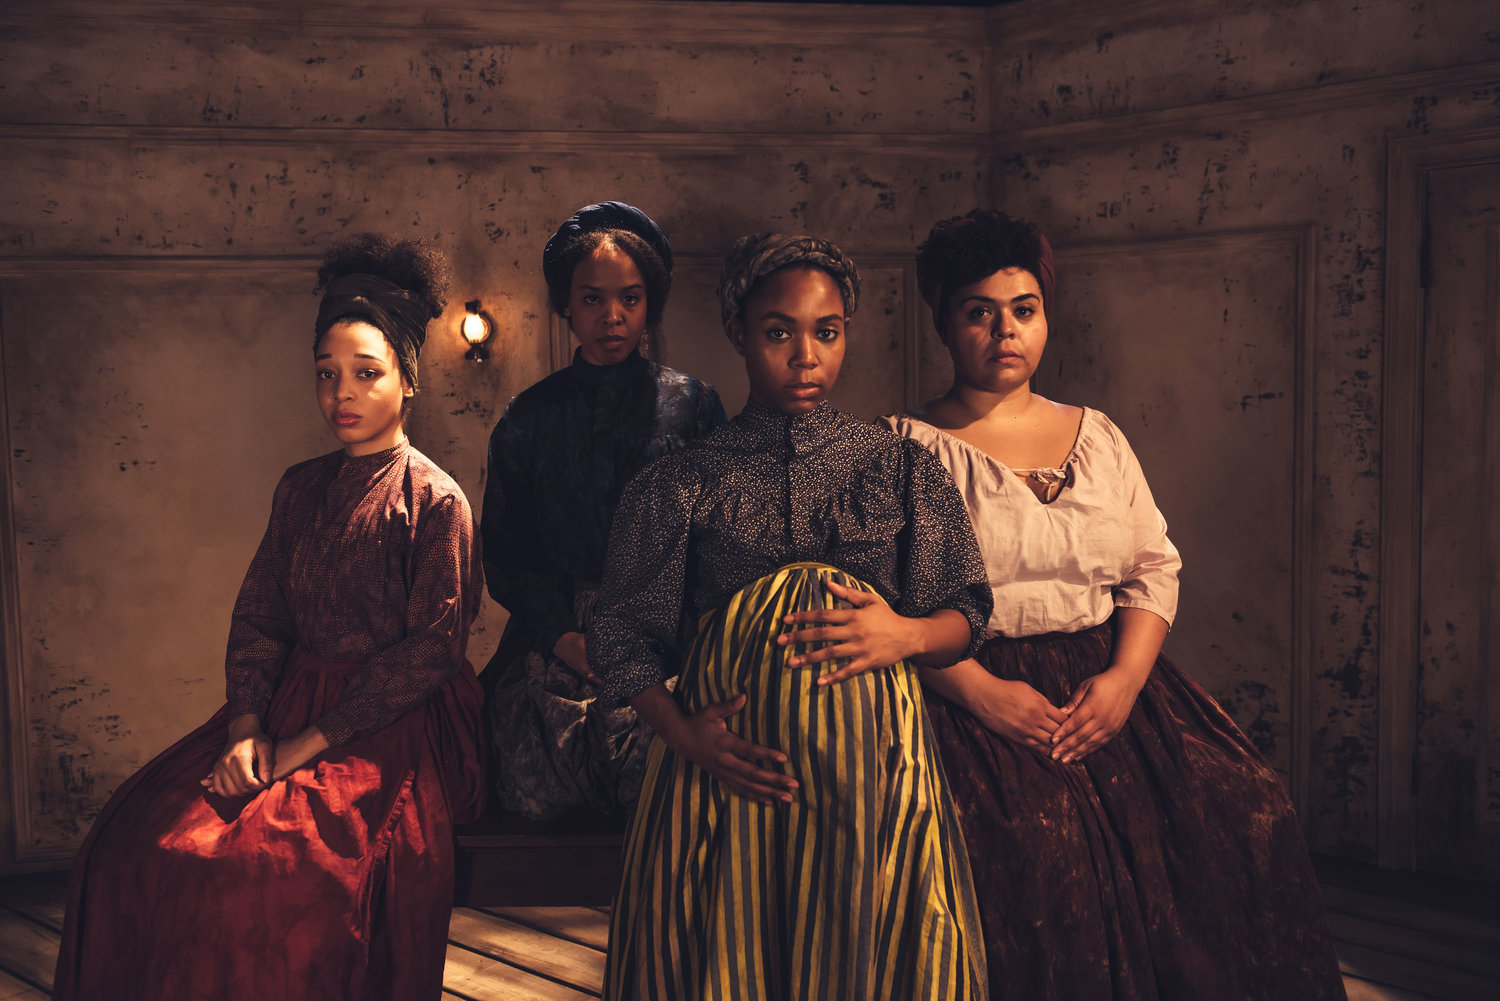 Ensemble Studio Theatre/Alfred P. Sloan Foundation present     BEHIND THE SHEET   by Charly Evon Simpson directed by Colette Robert*   A NEW YORK TIMES CRITIC'S PICK!   set by Lawrence E. Moten III  costumes by Sarah Woodham   lighting by Adam Honoré sound design by Fan Zhang